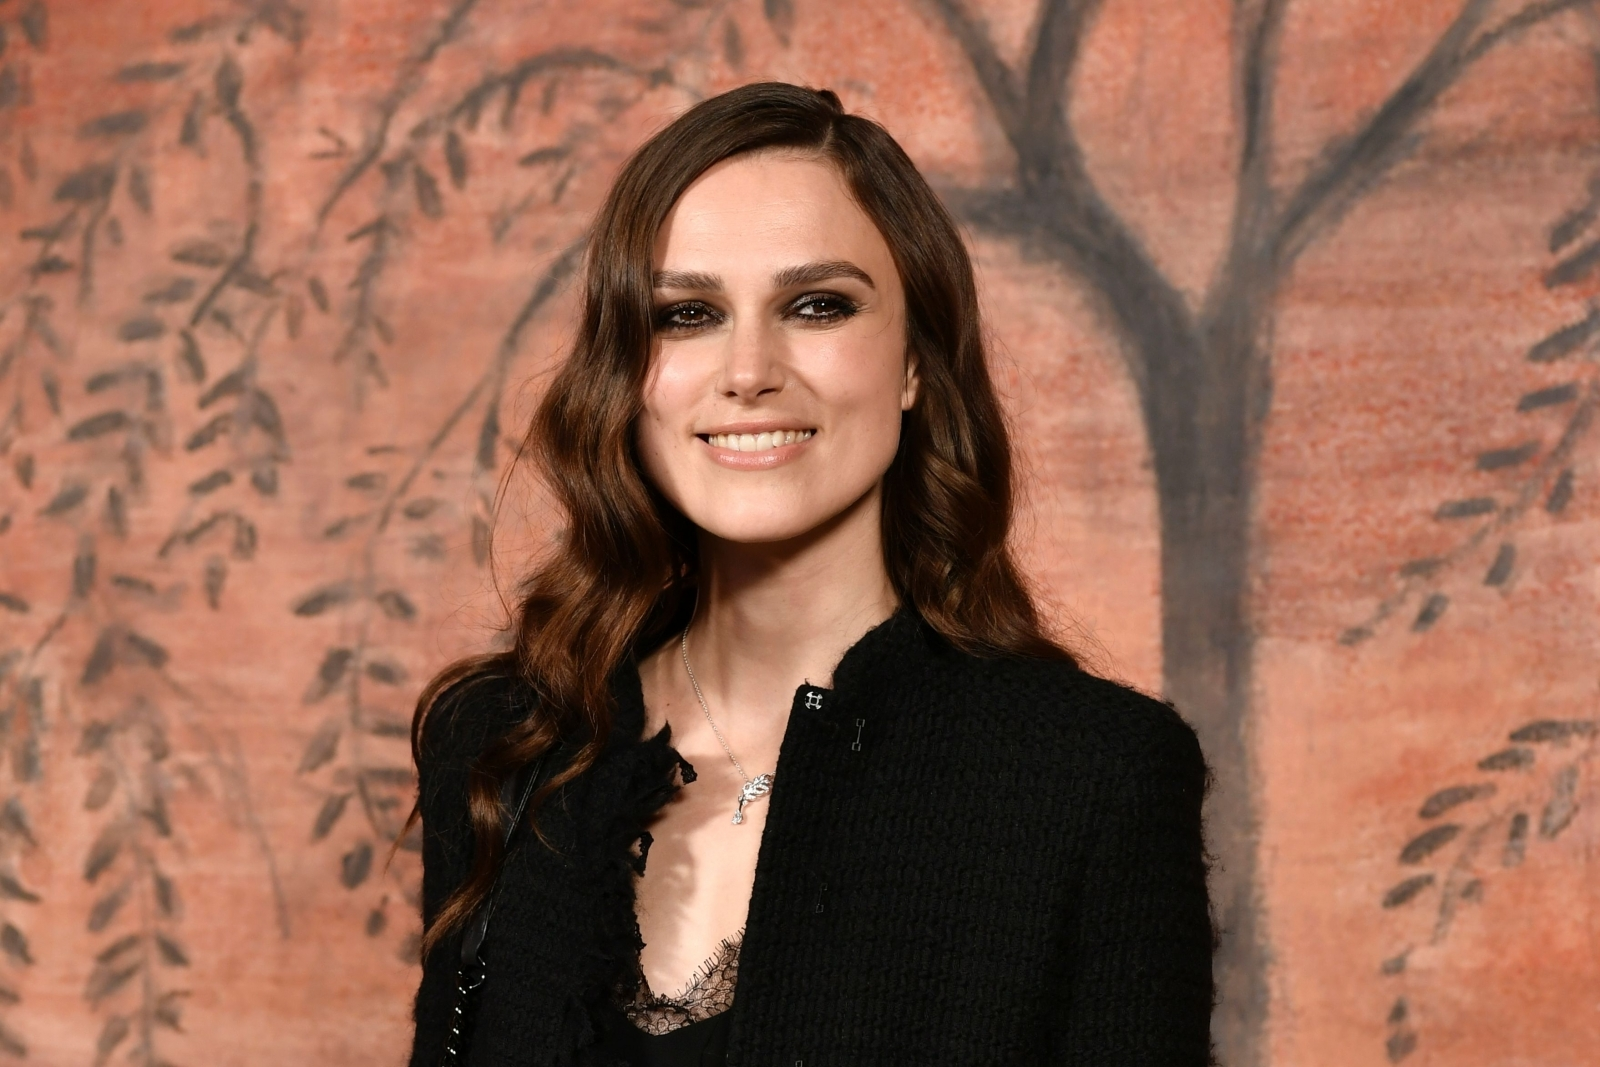 Keira Knightley blasts Hollywood for celebrated rape culture in movies